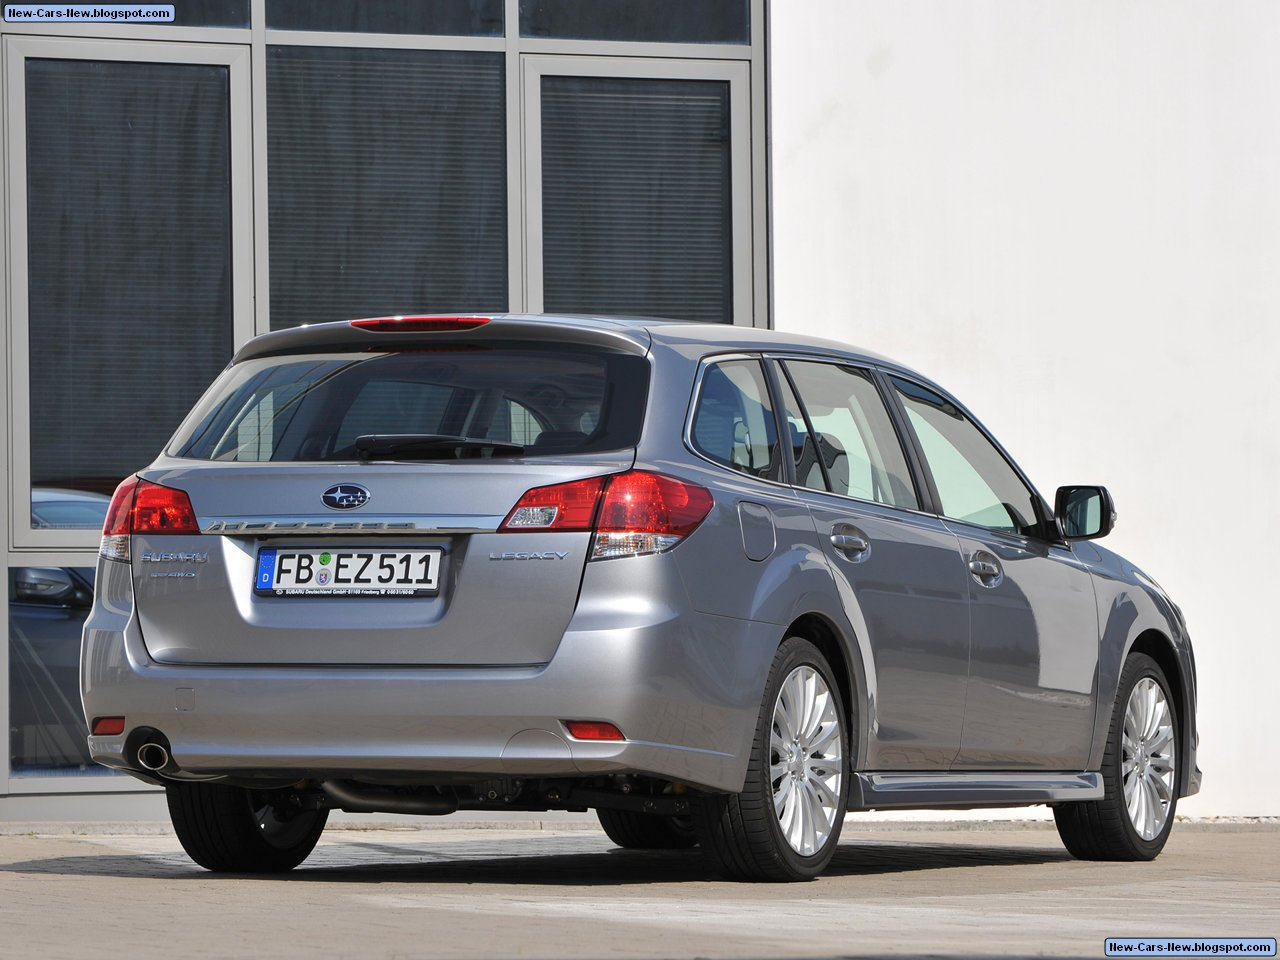 2010 Subaru Legacy Tourer photo - 2